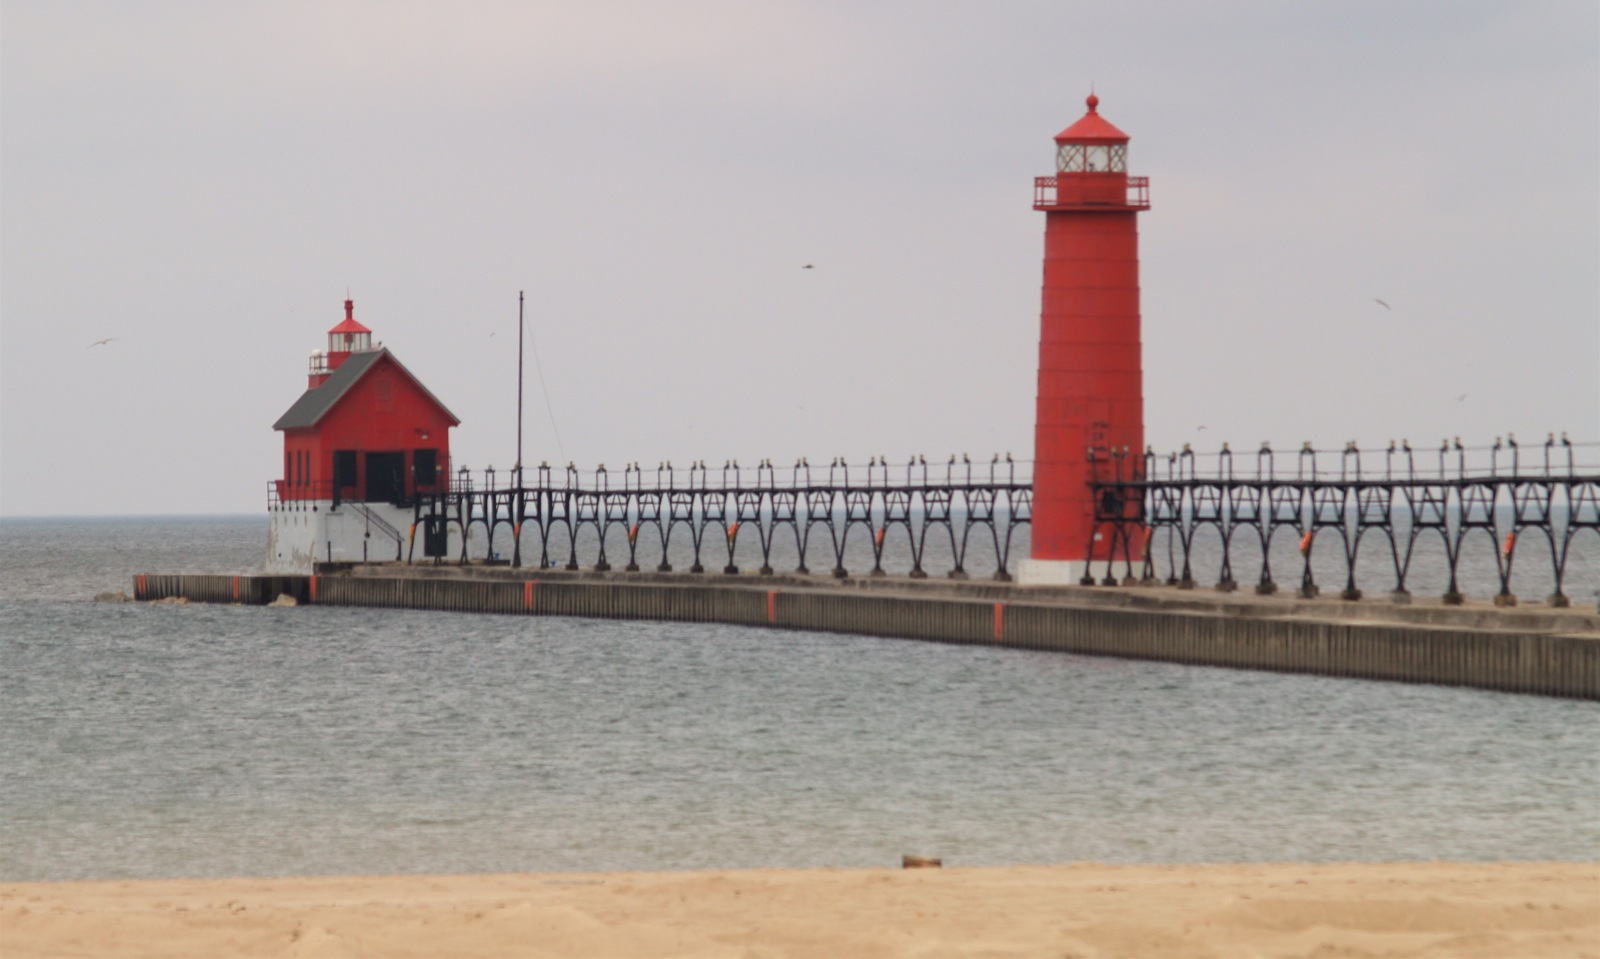 https://commons.wikimedia.org/wiki/File:Grand_Haven_MI_South_Pierhead_Light_and_inner_lighthouse.jpg